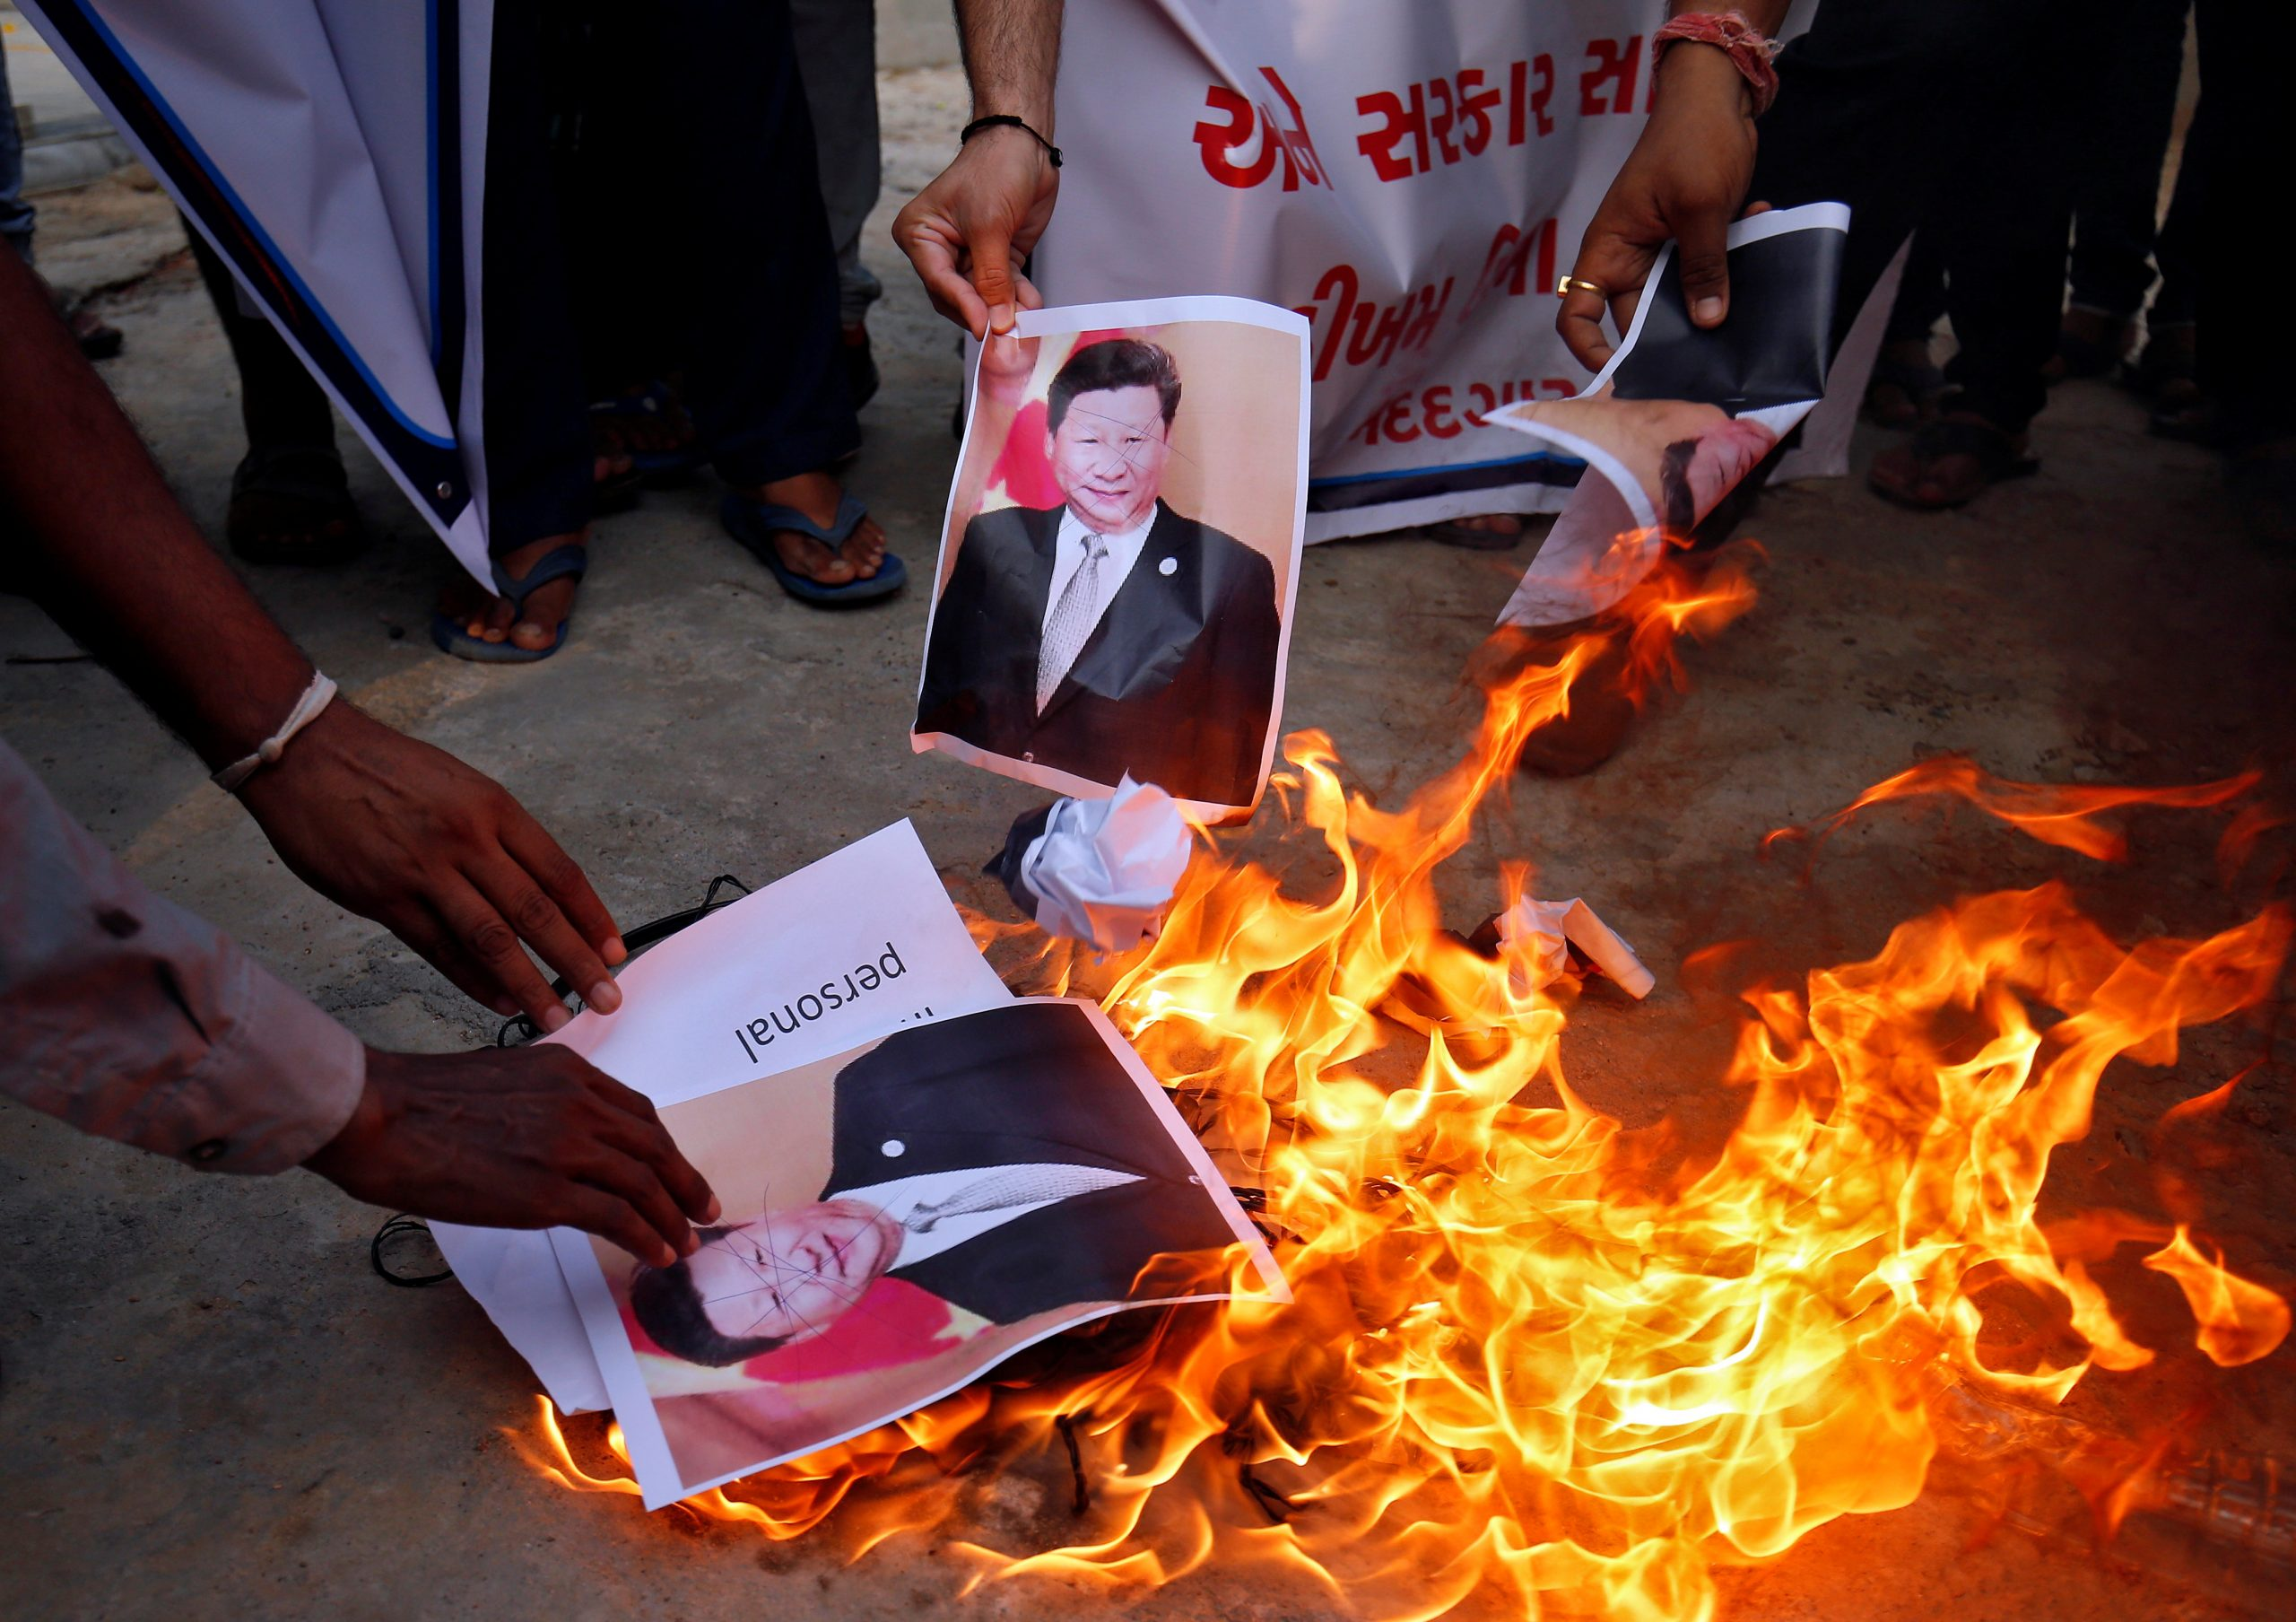 Demonstrators burn posters of Chinese President Xi Jinping during a protest against China, in Ahmedabad, Gujarat. (REUTERS/Amit Dave)